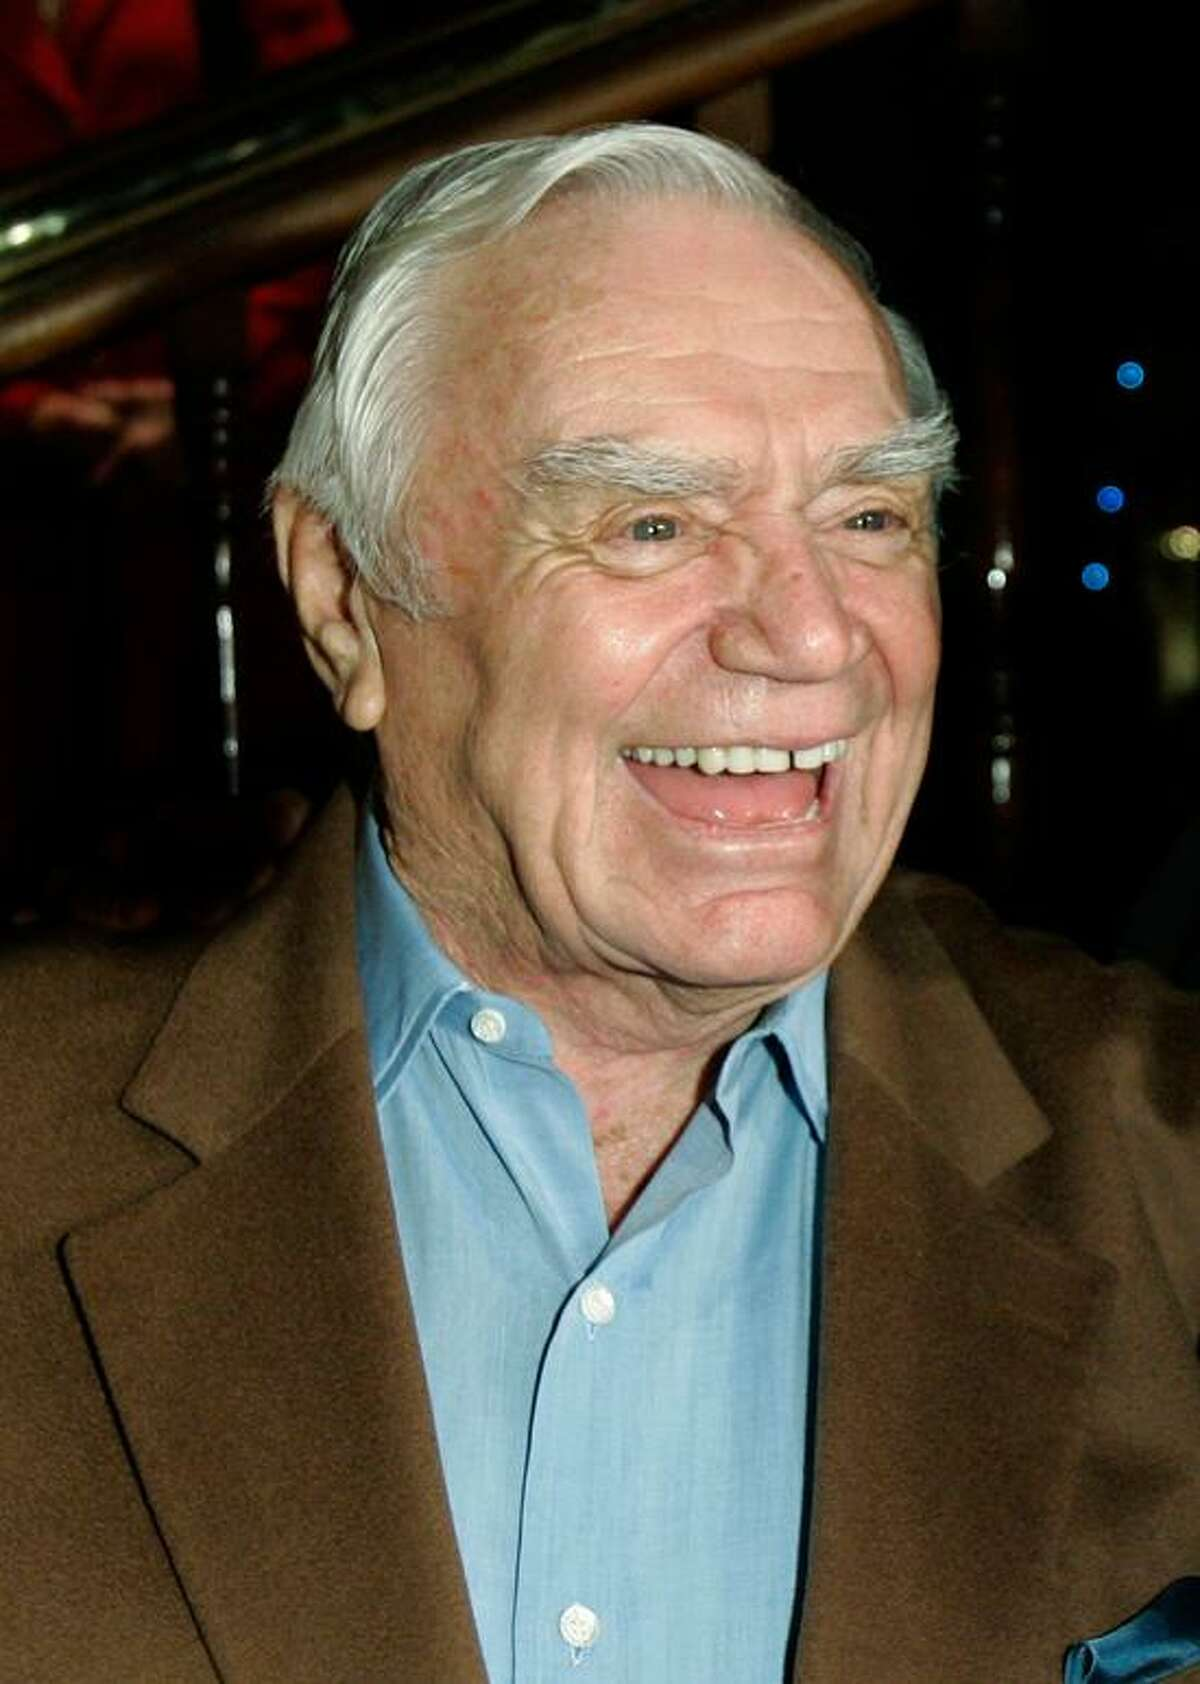 Actor Ernest Borgnine is shown at his 90th birthday party in Los Angeles, in this Jan. 24, 2007, file photo. (AP Photo/Kevork Djansezian, file)